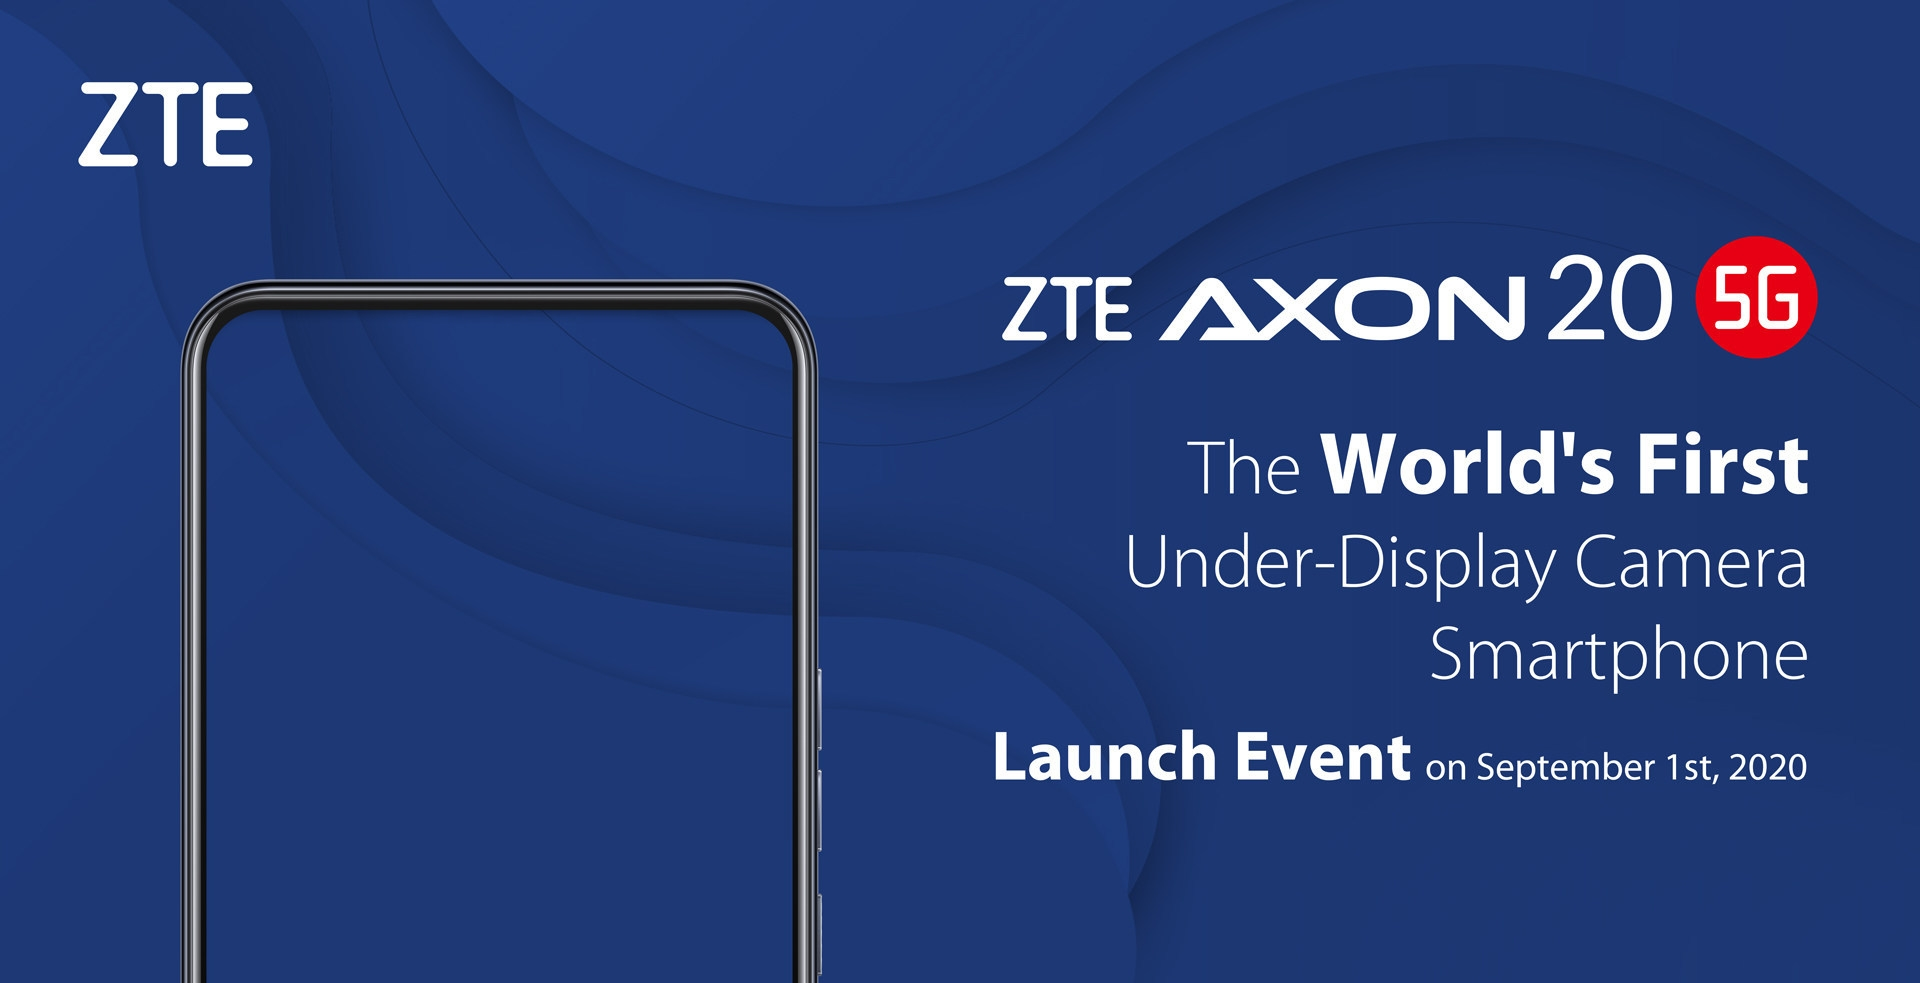 ZTE's Axon 20 5G smartphone will have the first under-display camera   DeviceDaily.com